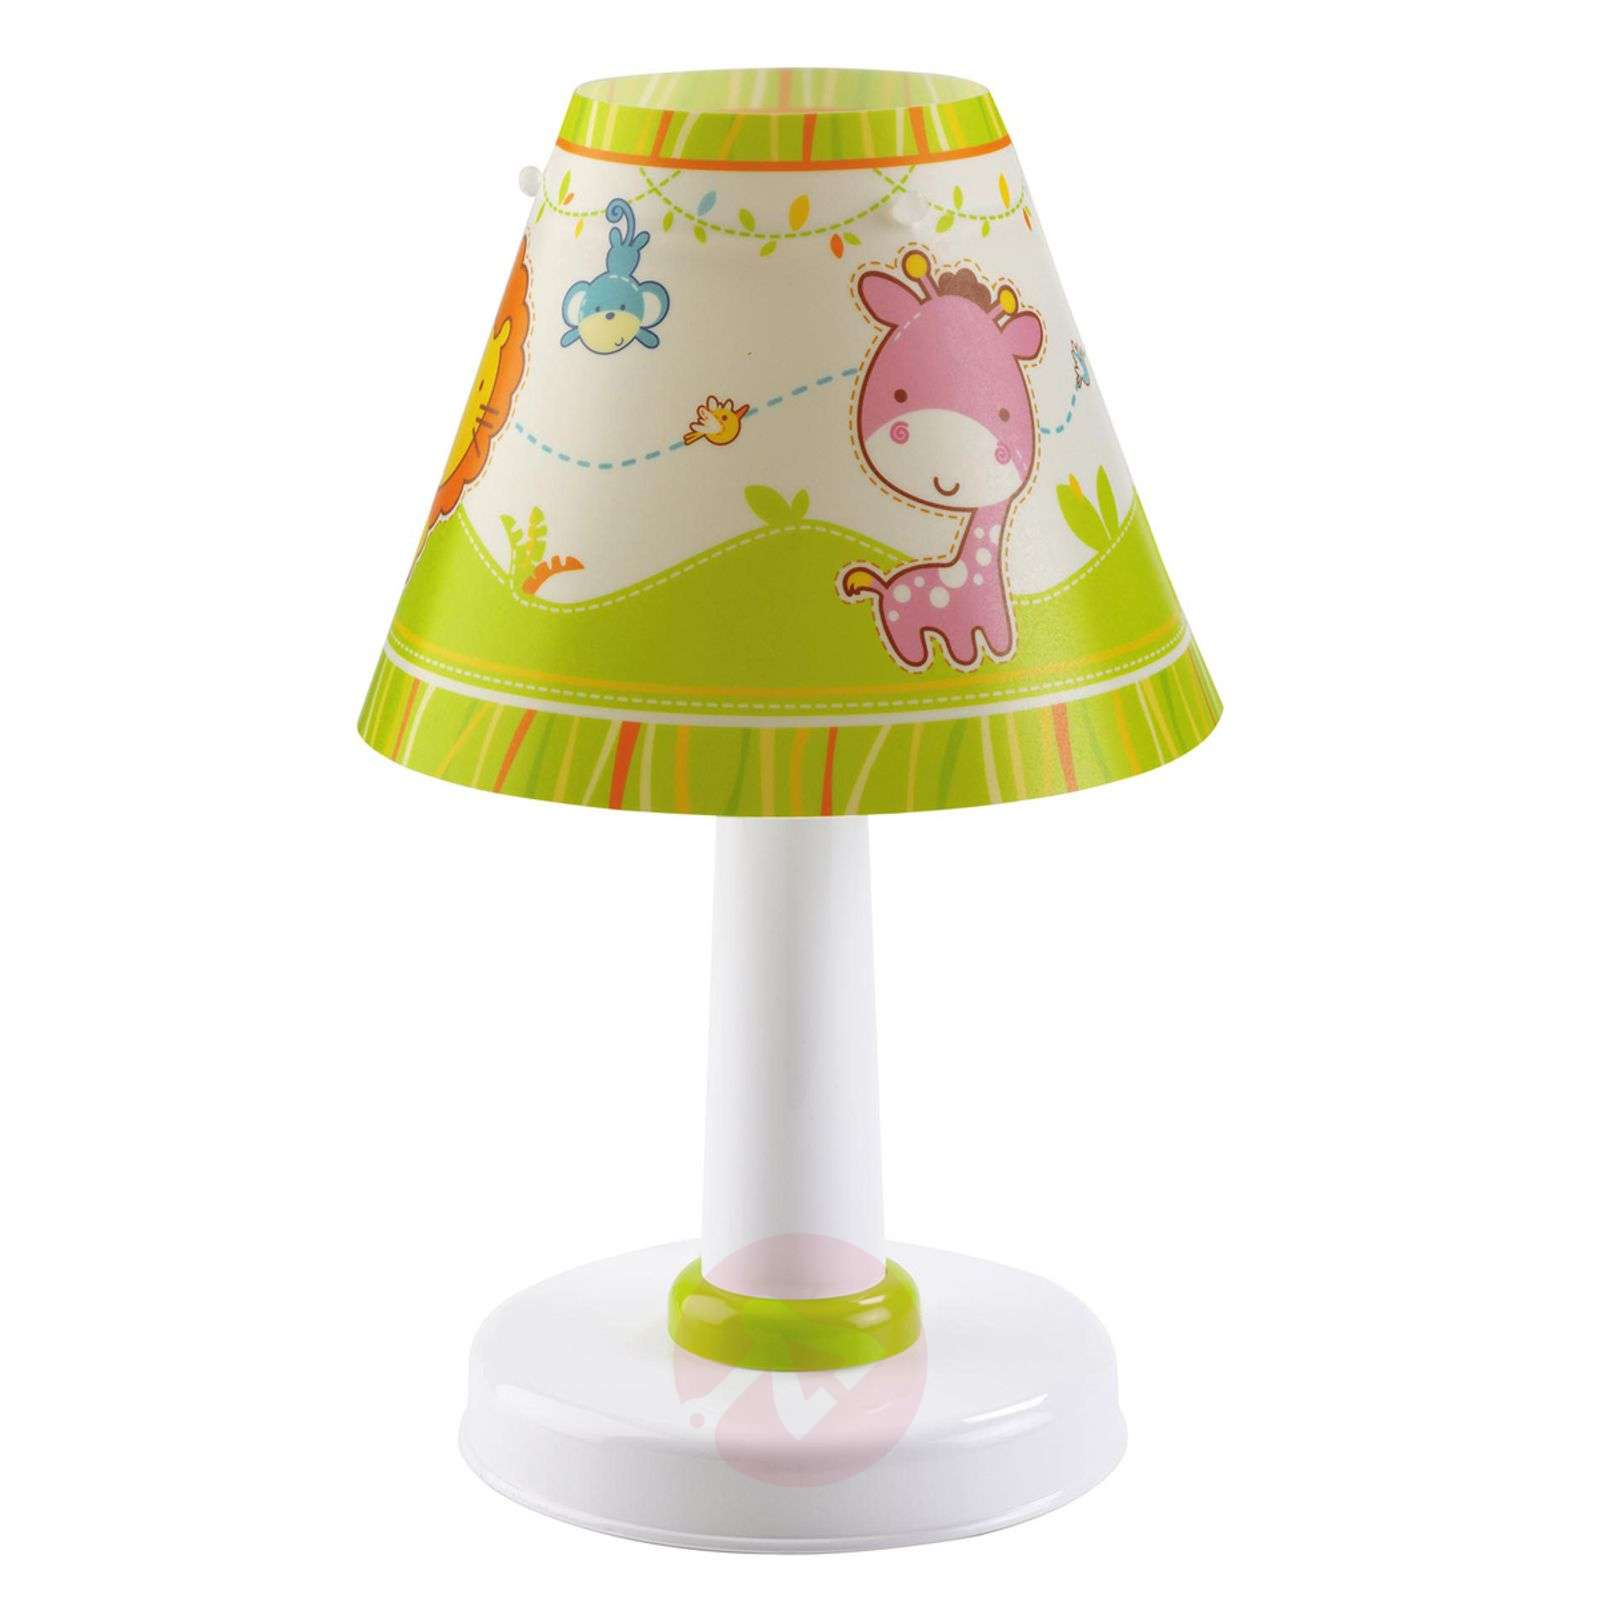 Cute childrens table lamp little zoo lights cute childrens table lamp little zoo 2507360 01 geotapseo Gallery